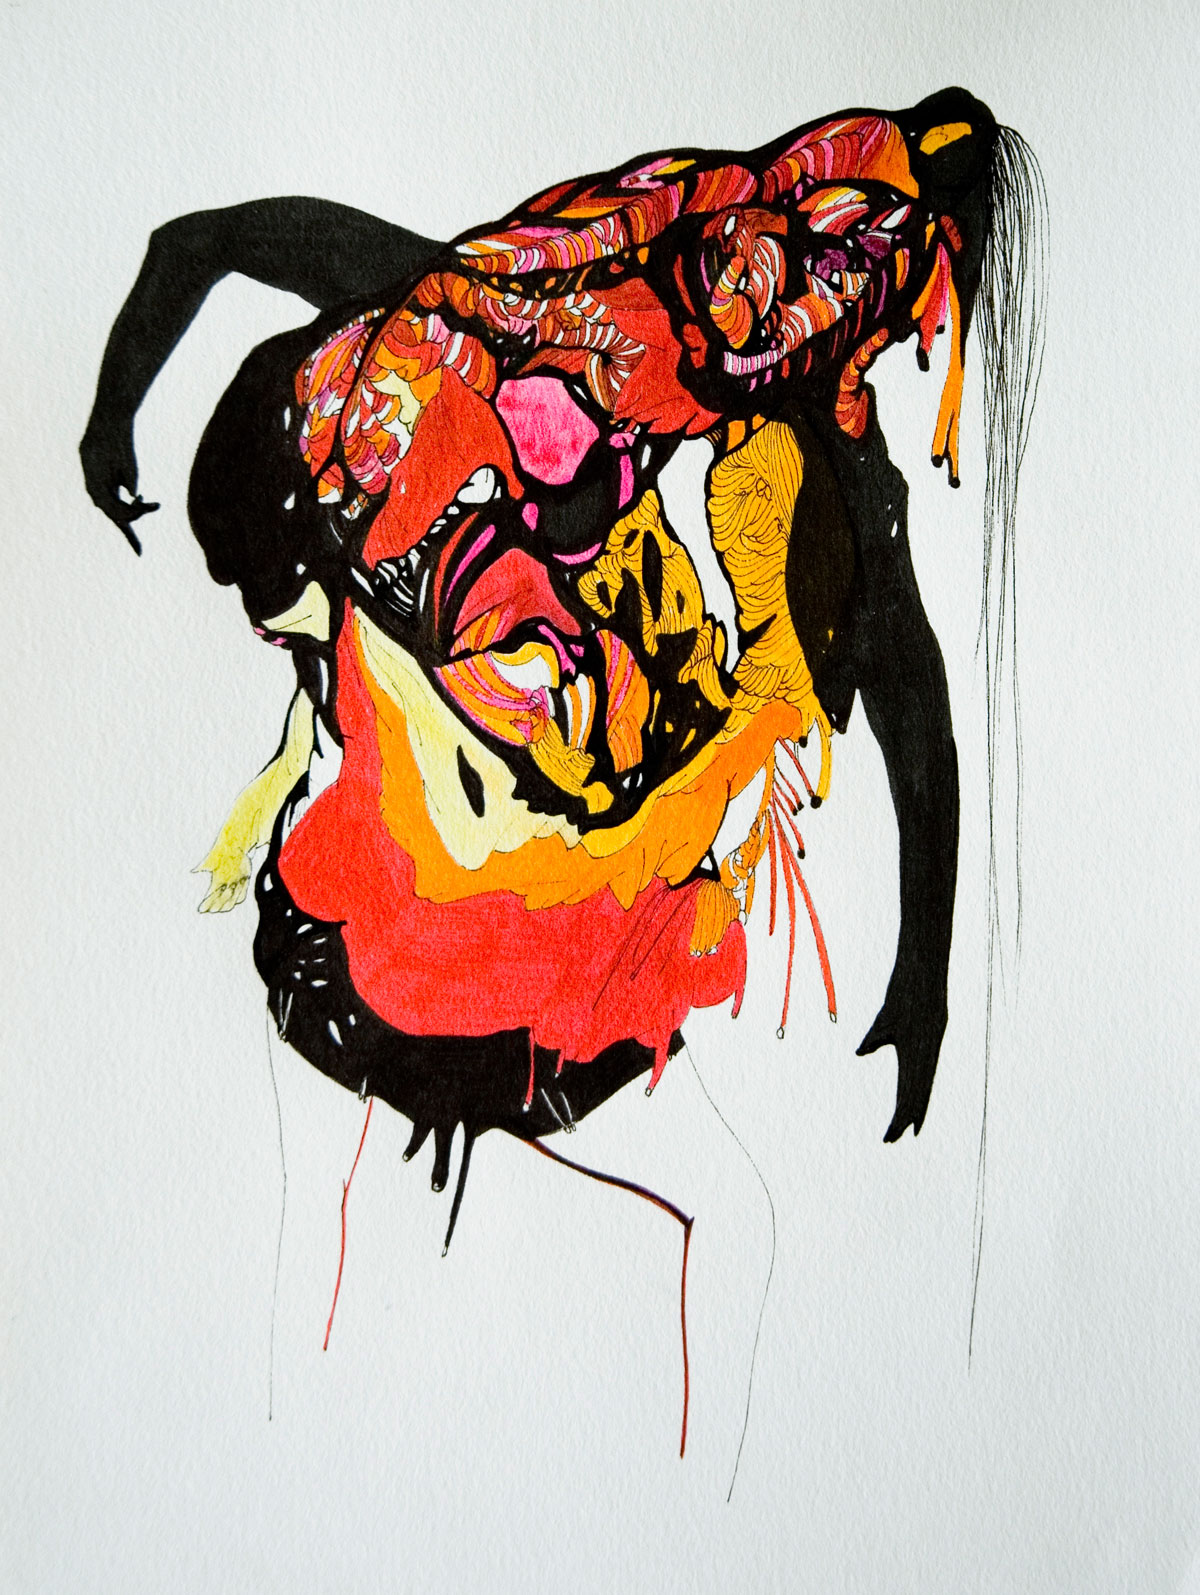 Monstra no. 6, ink and marker on paper, 7in x 5in, 2014